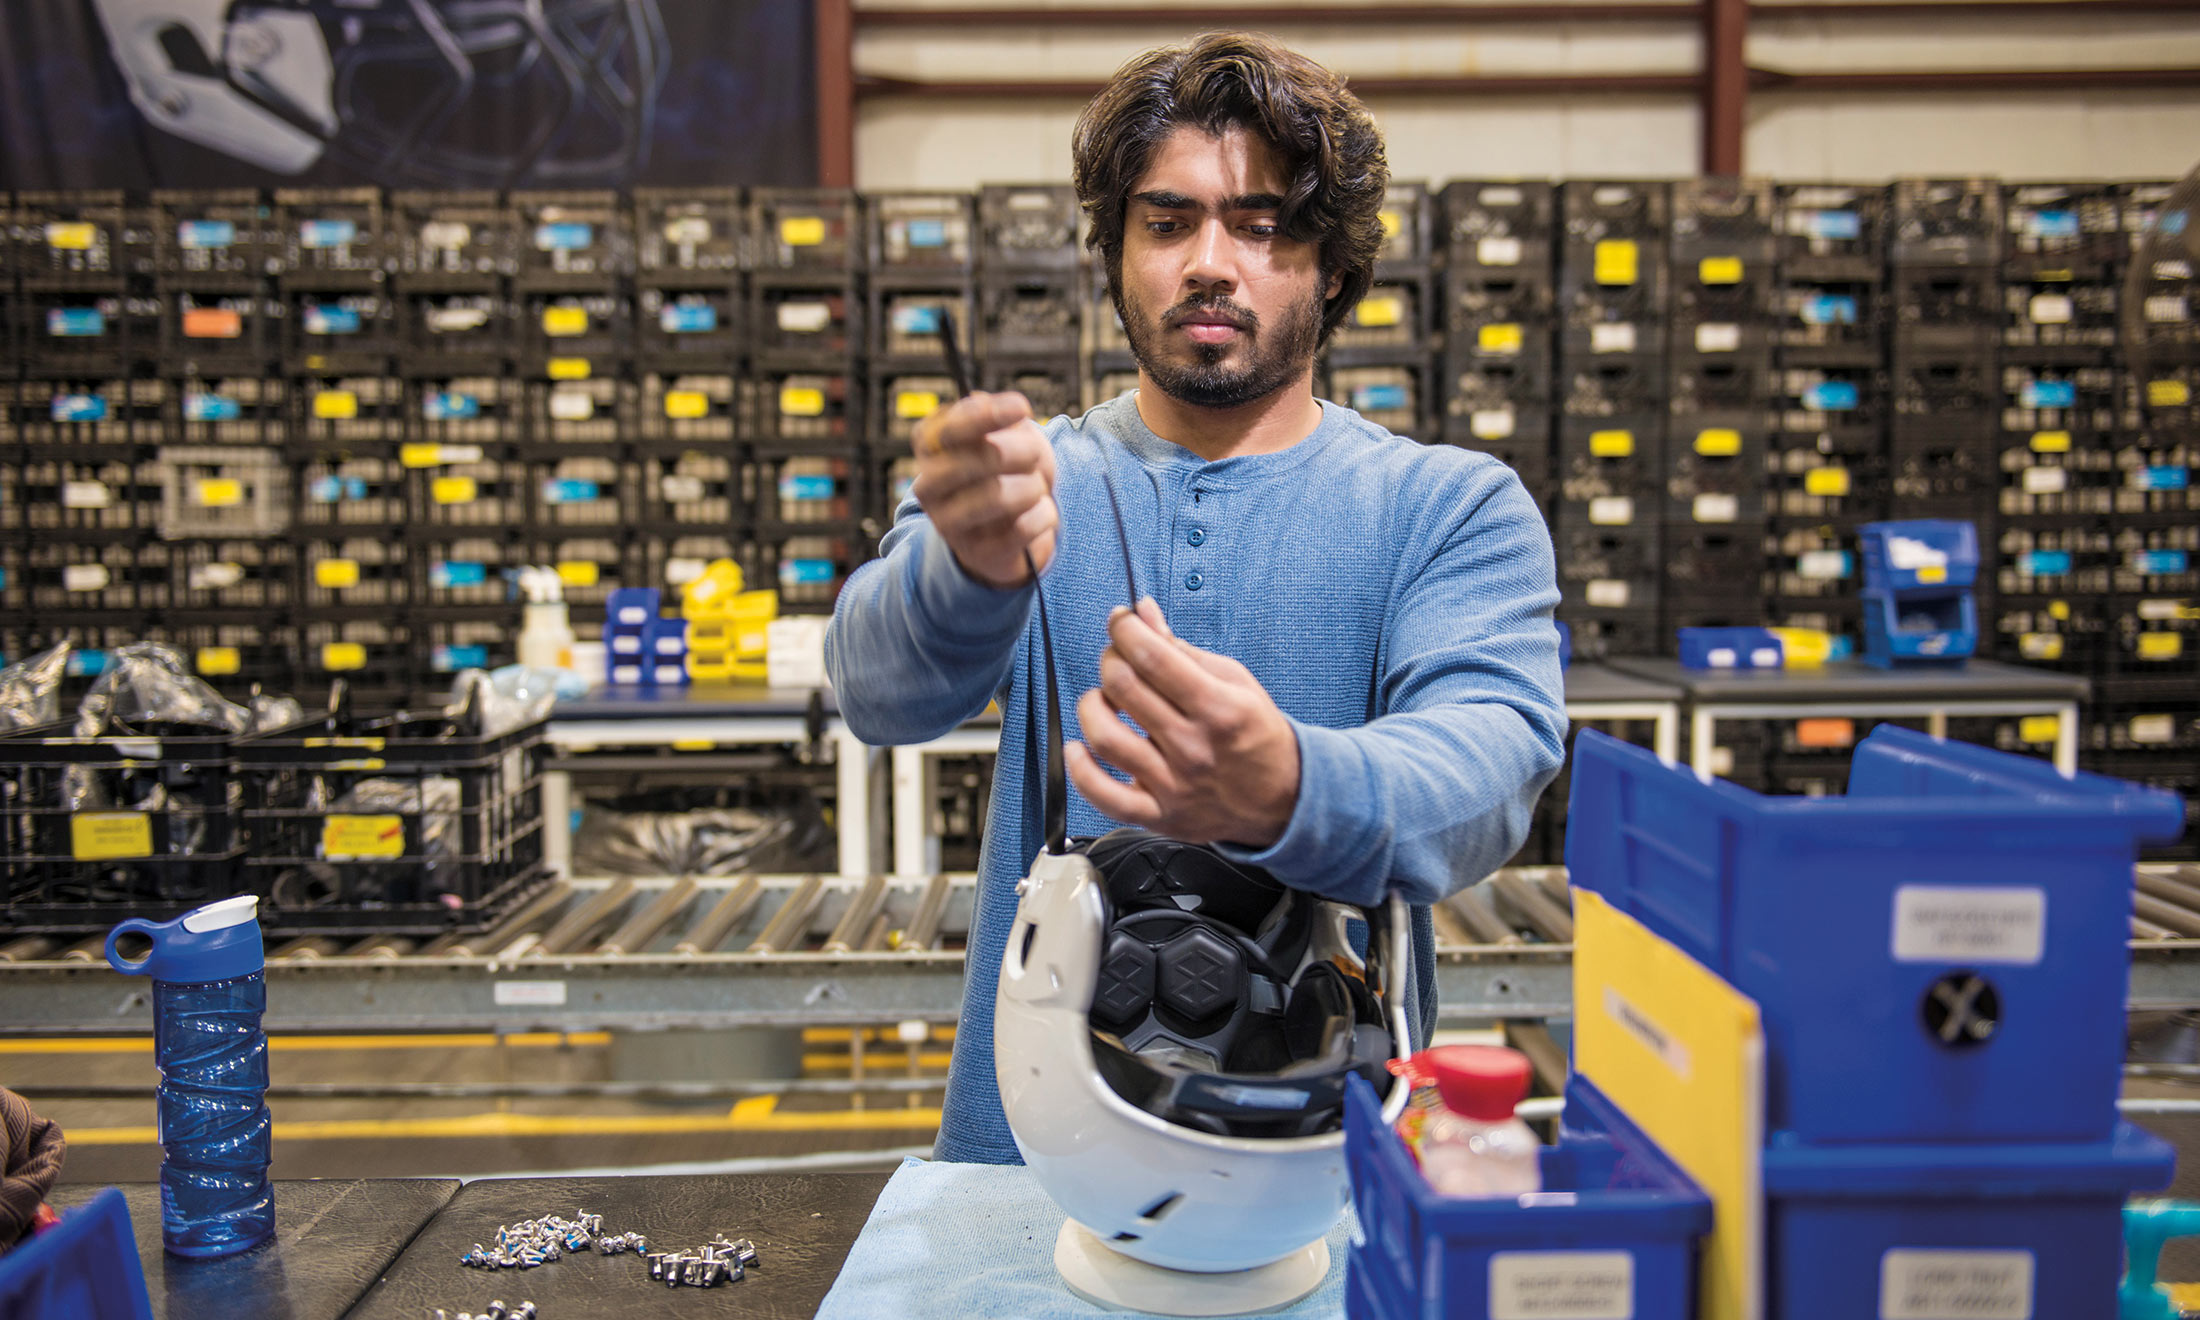 Oakland University grad student Prateek Bansal fastens a chin strap to a white helmet at a Xenith production factory in downtown Detroit